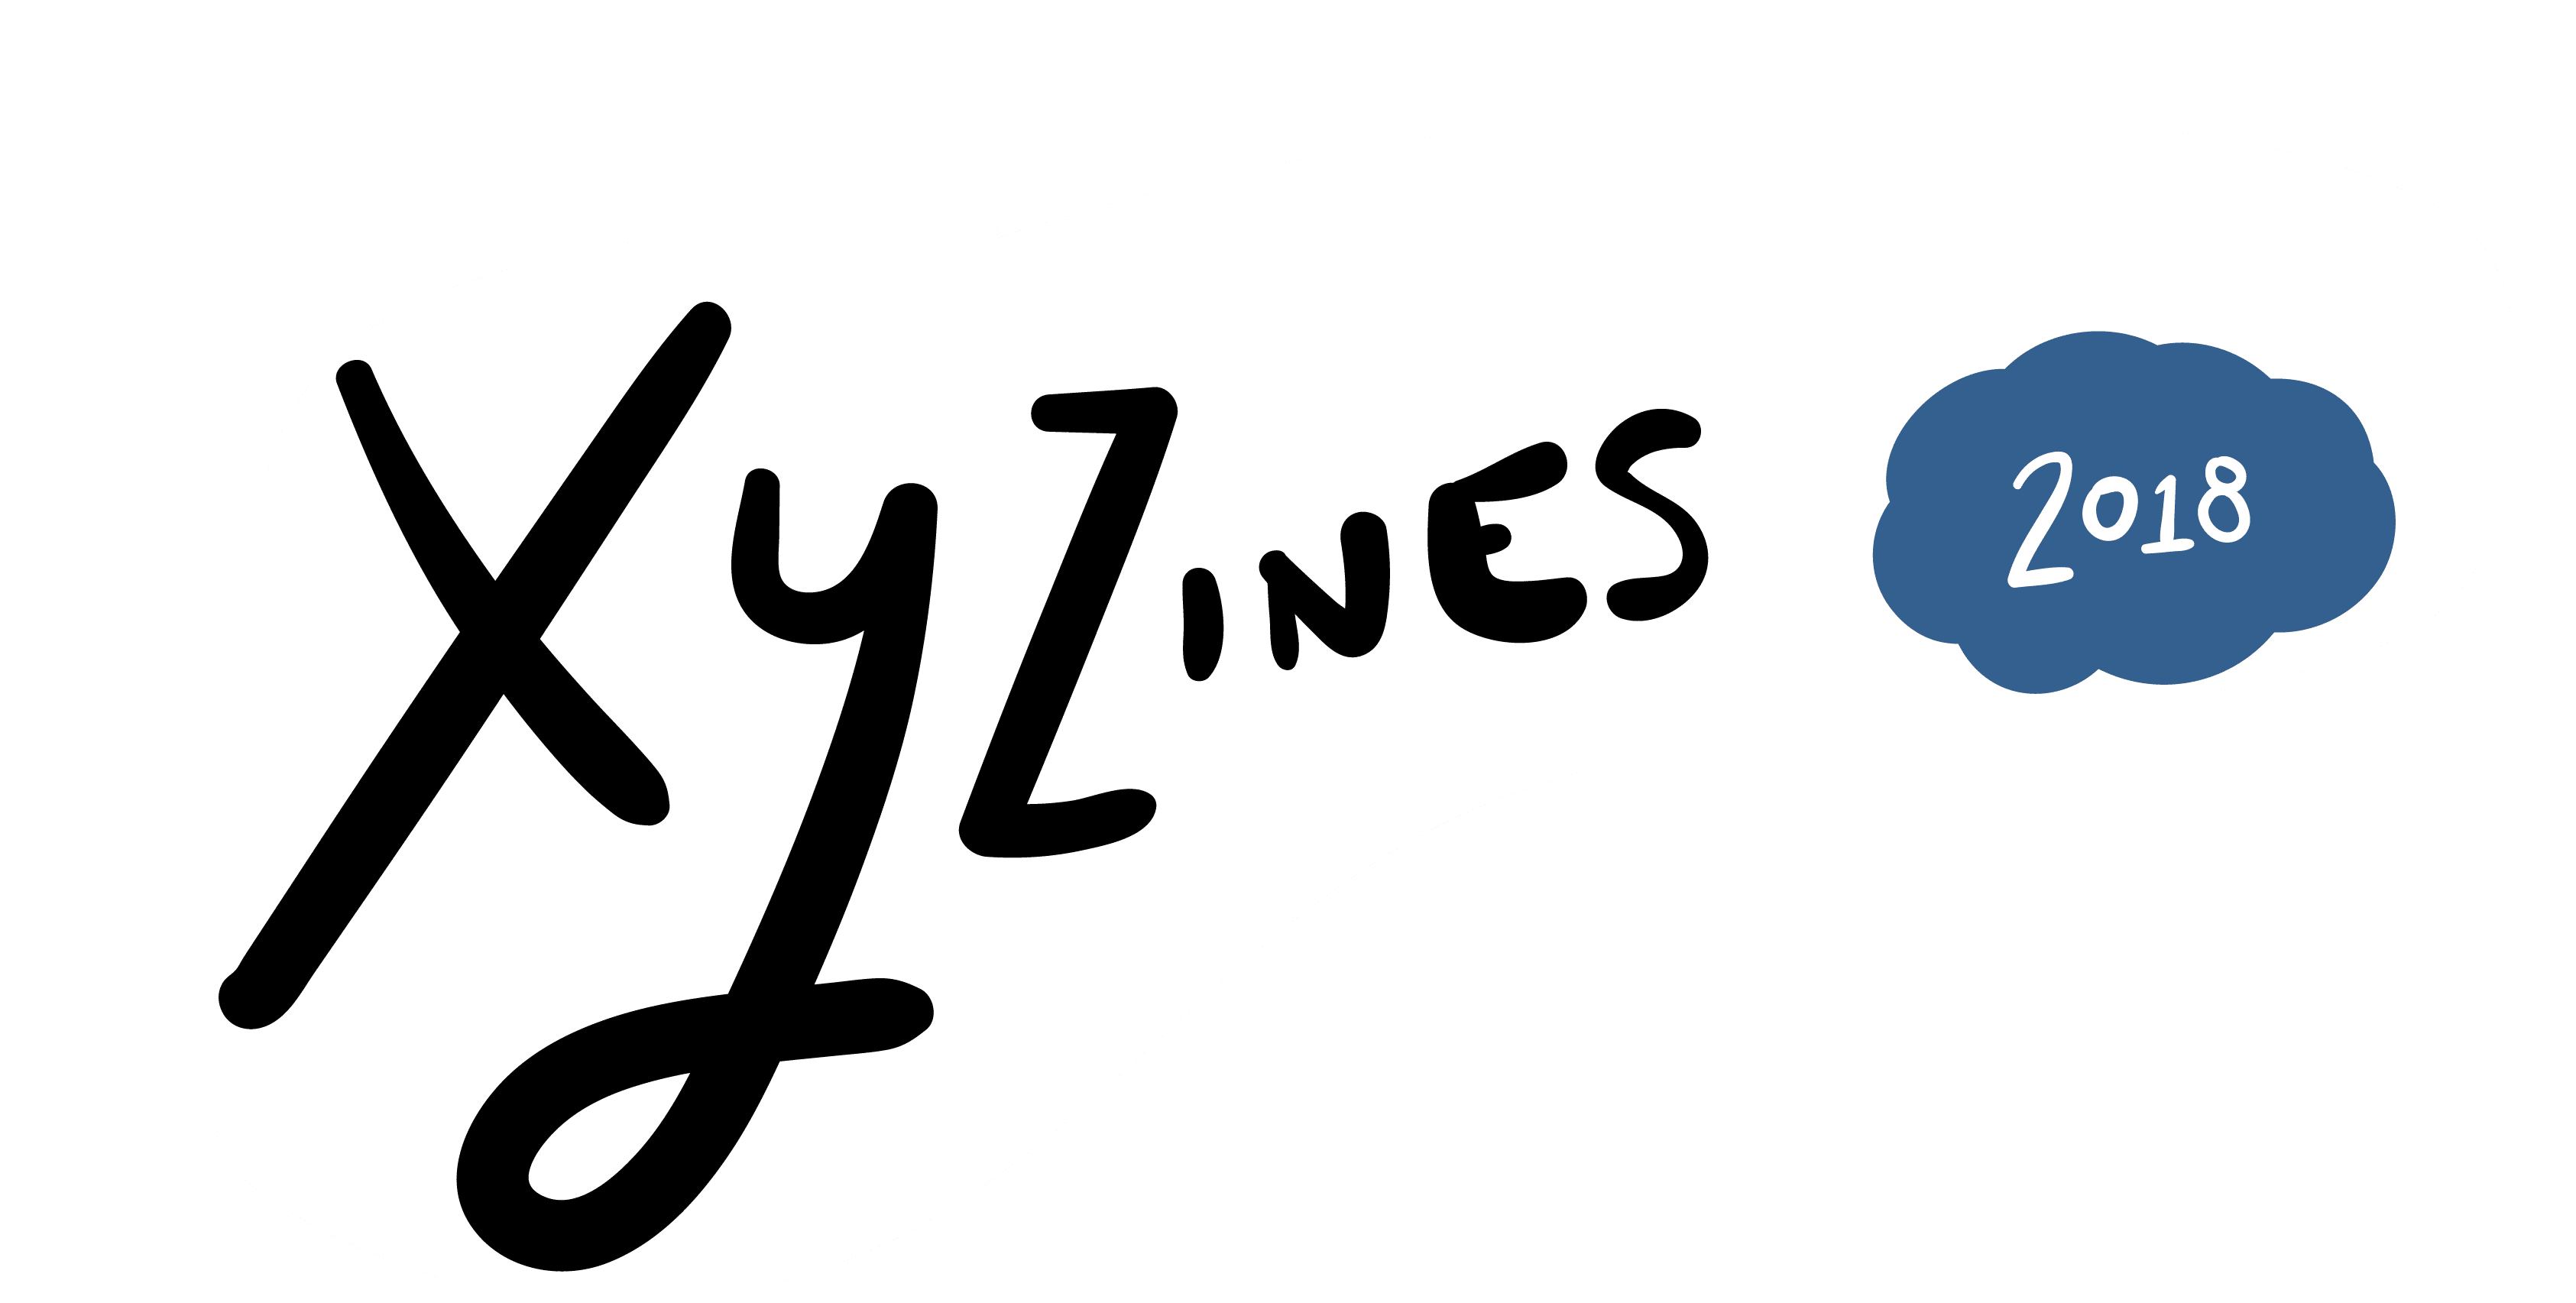 XYZines Digital Residency 2018